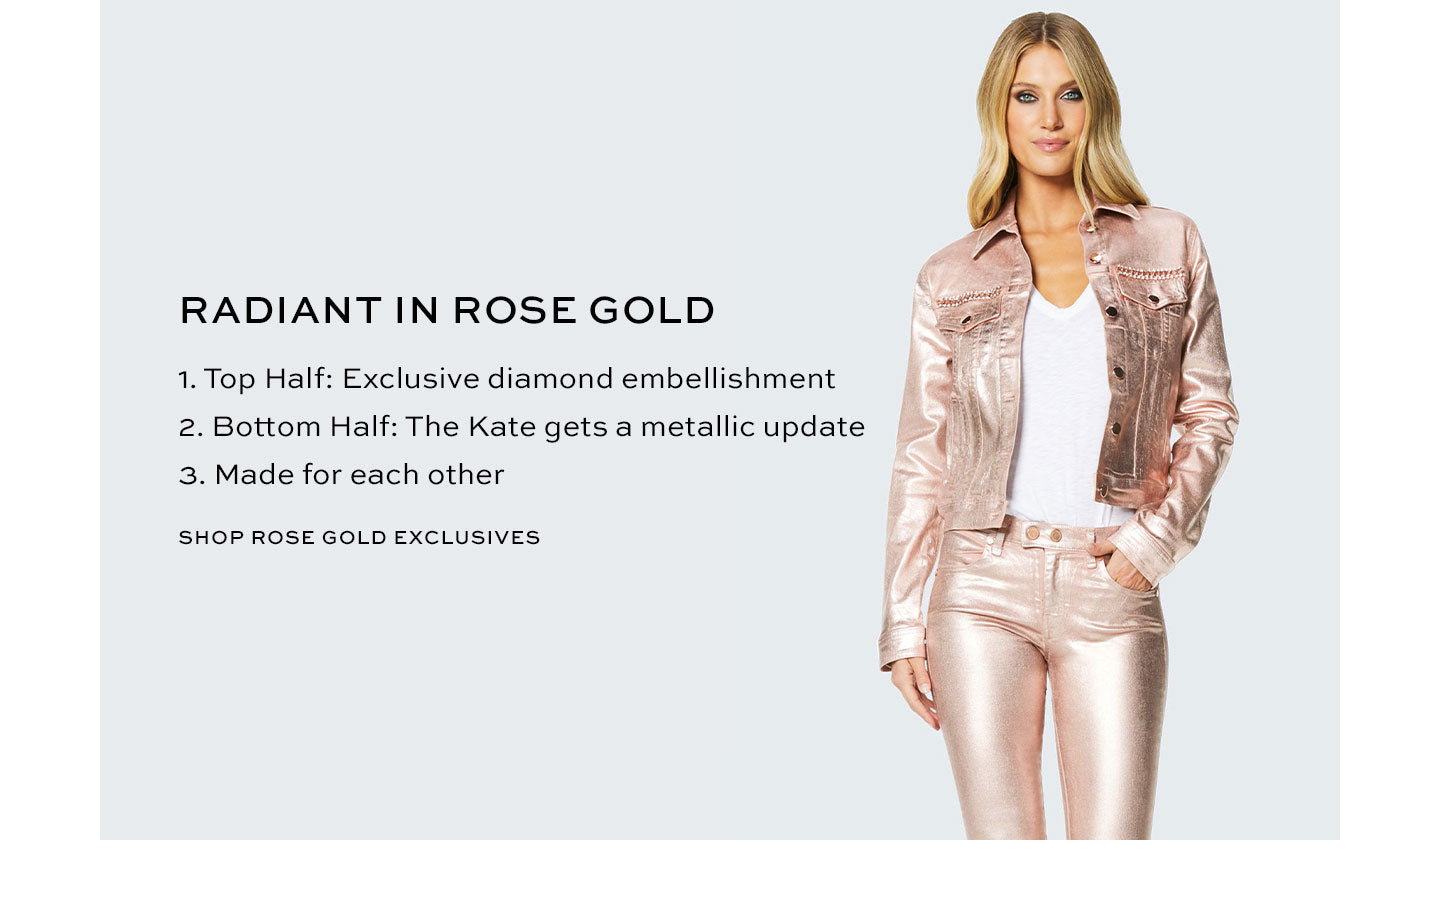 Shop Rose Gold Exclusive